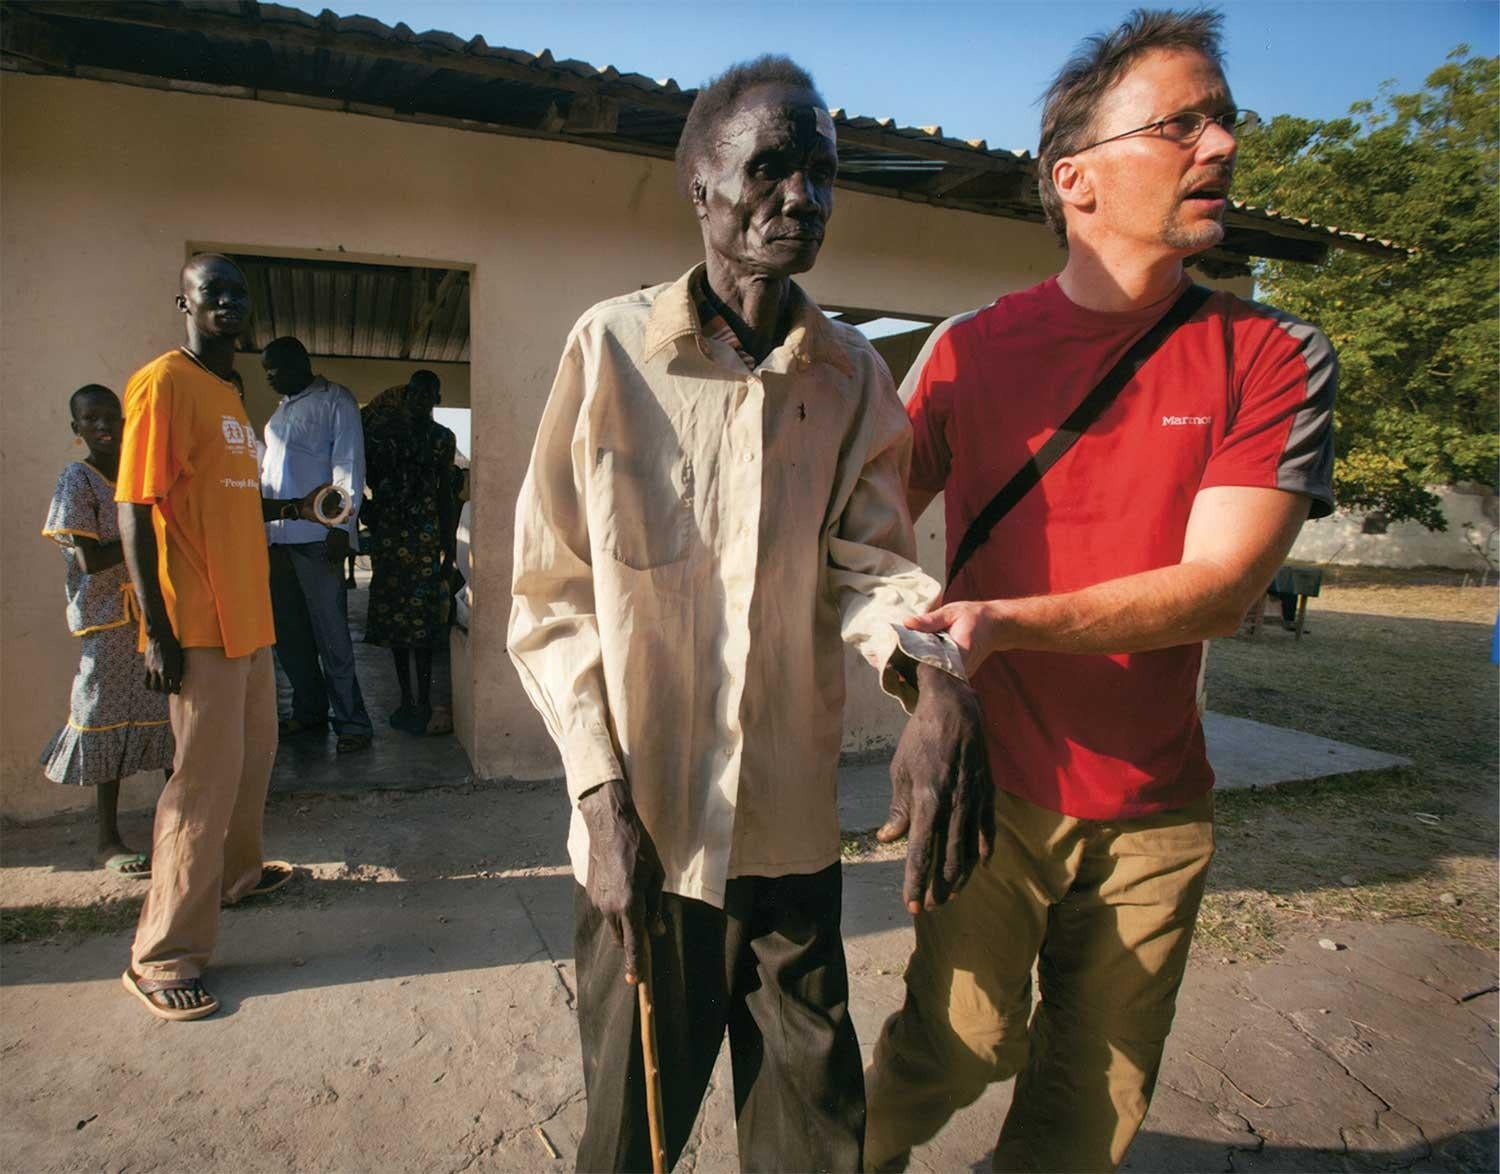 Jordan Campbell(Comm'91) leads one of the blind patients